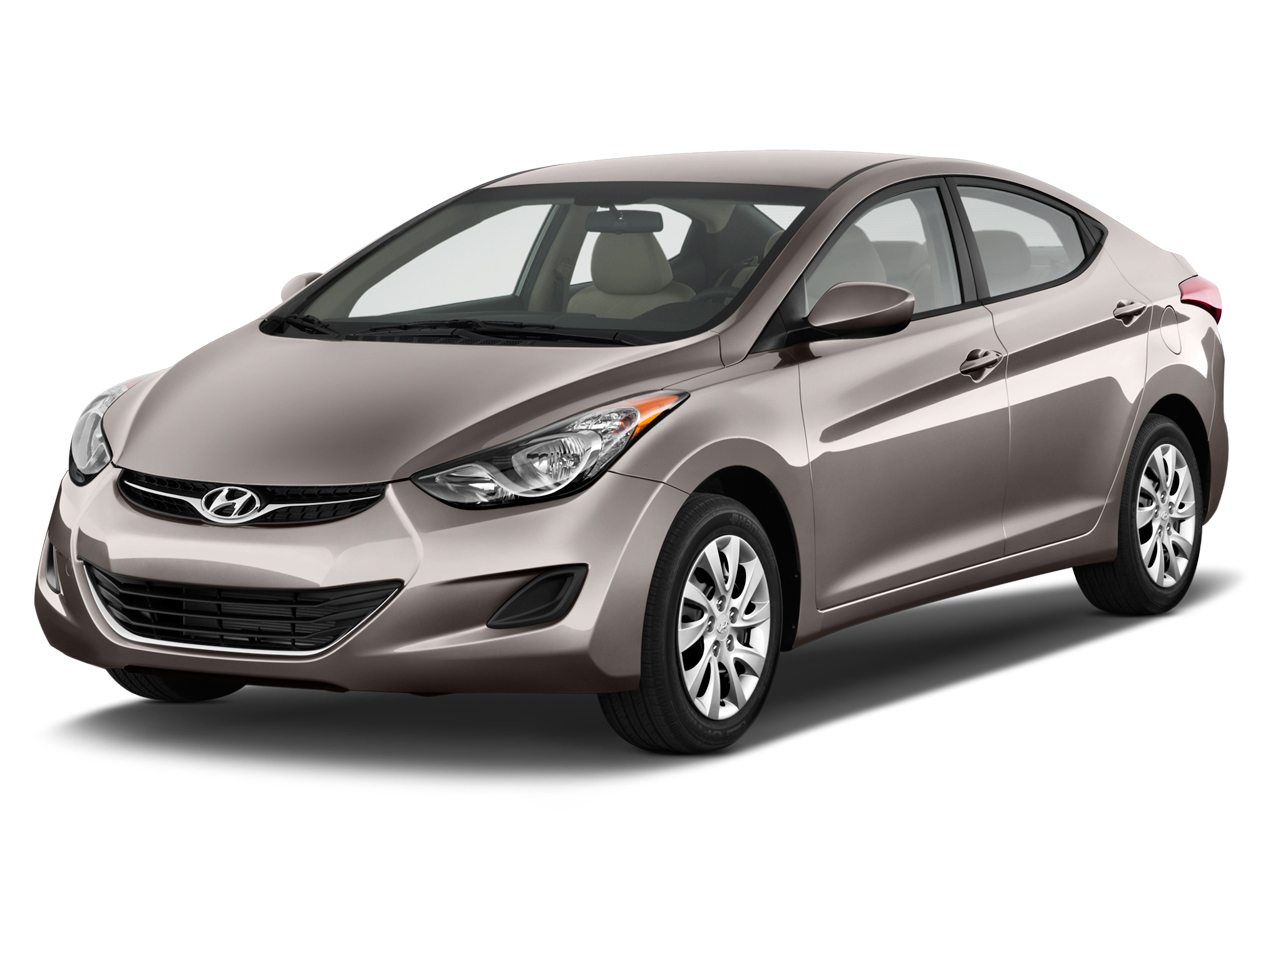 2013 Hyundai Elantra Gas Mileage The Car Connection